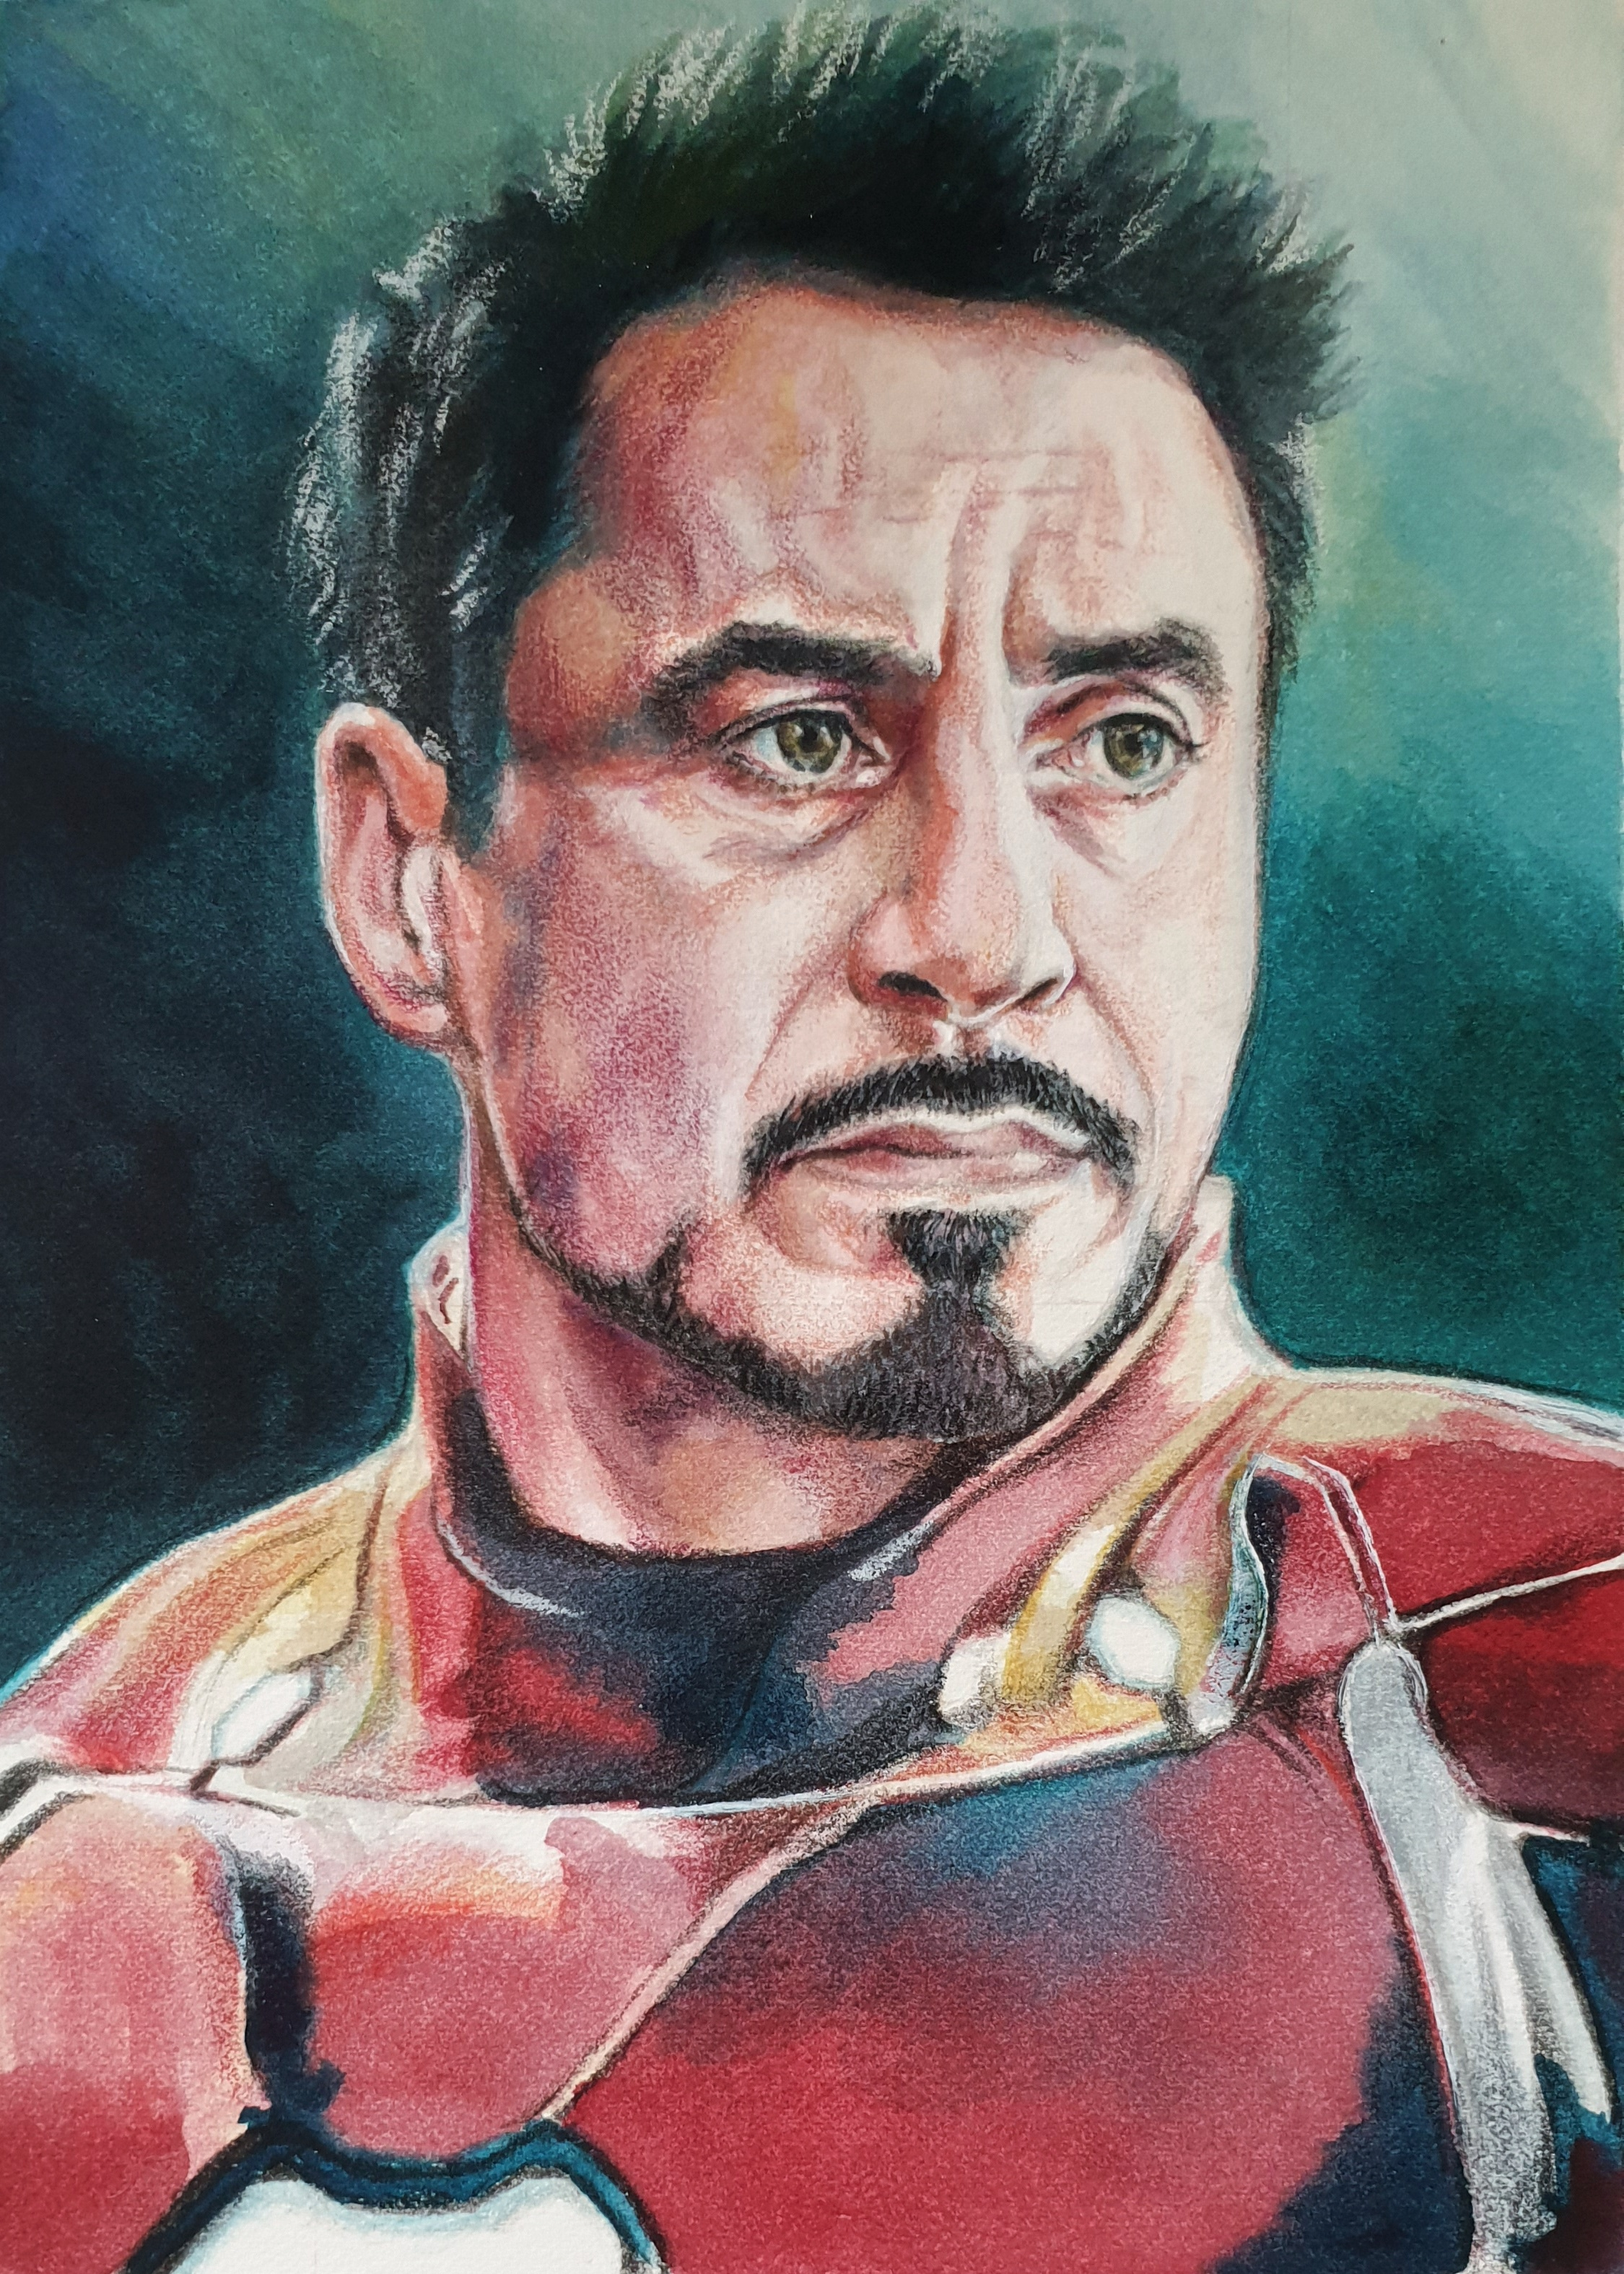 Tony Stark - Fan Art